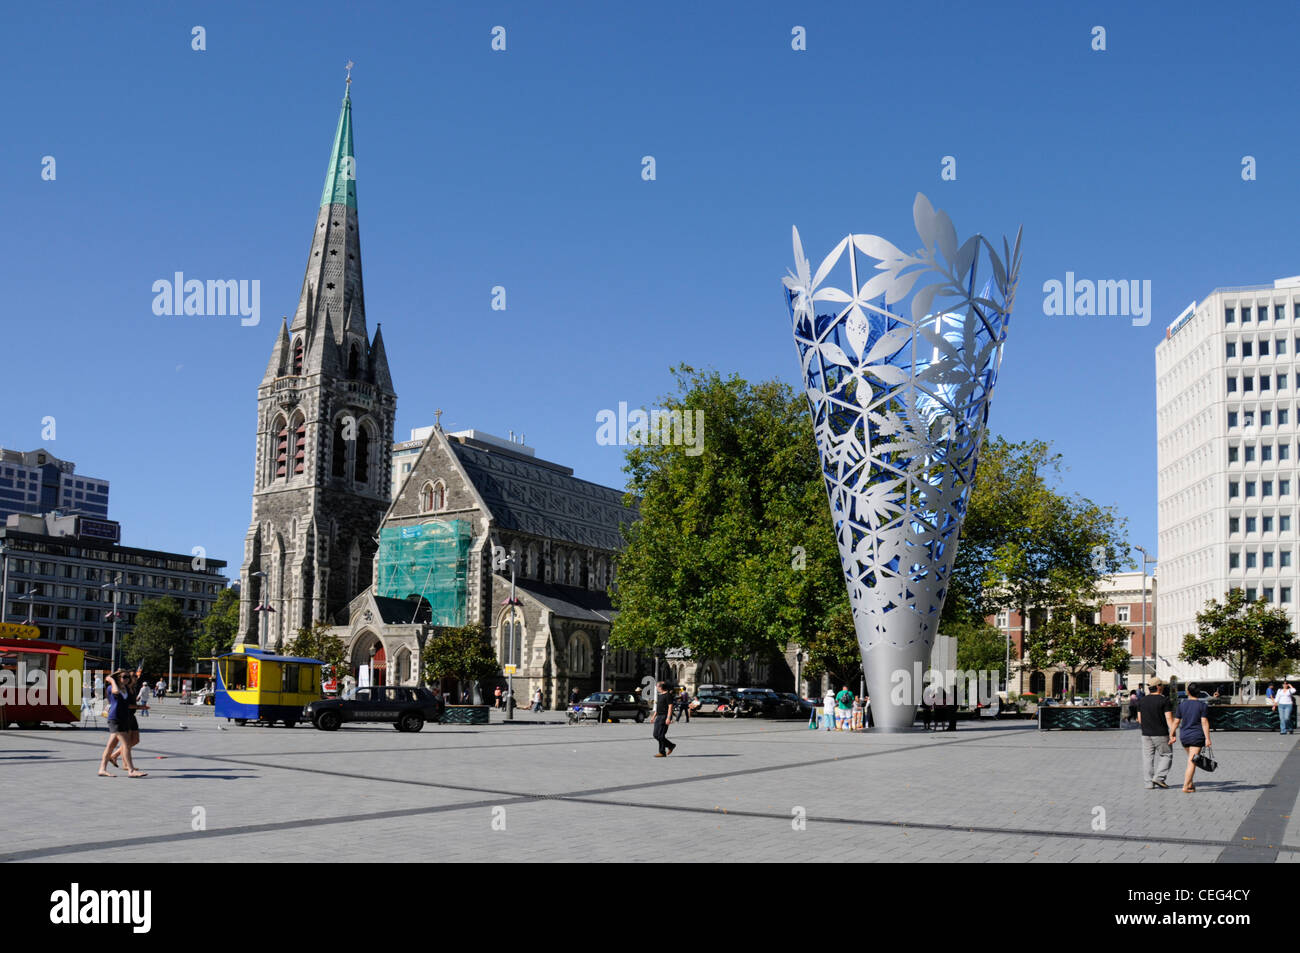 The symbolic 'Chalice' and Christchurch Cathedral in Cathedral Square, Christchurch,New Zealand. - Stock Image